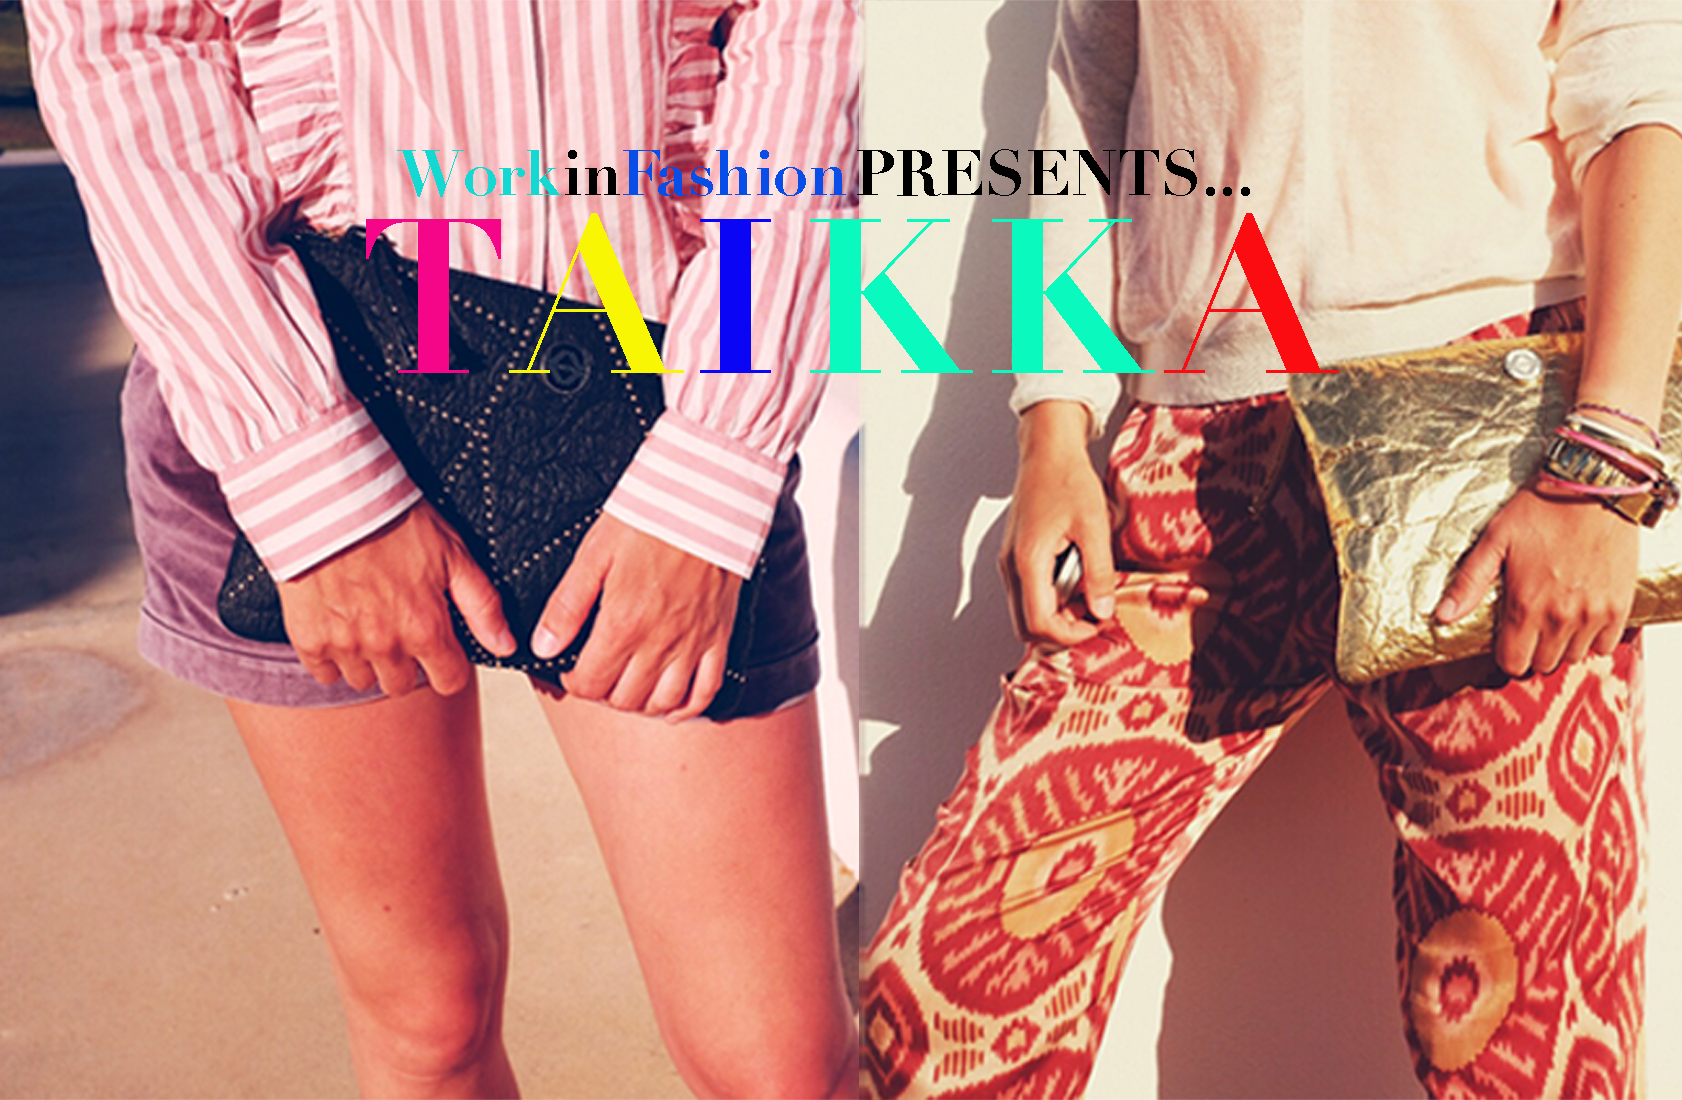 Work In Fashion Presents… Taikka by Yasmin Jones-Henry